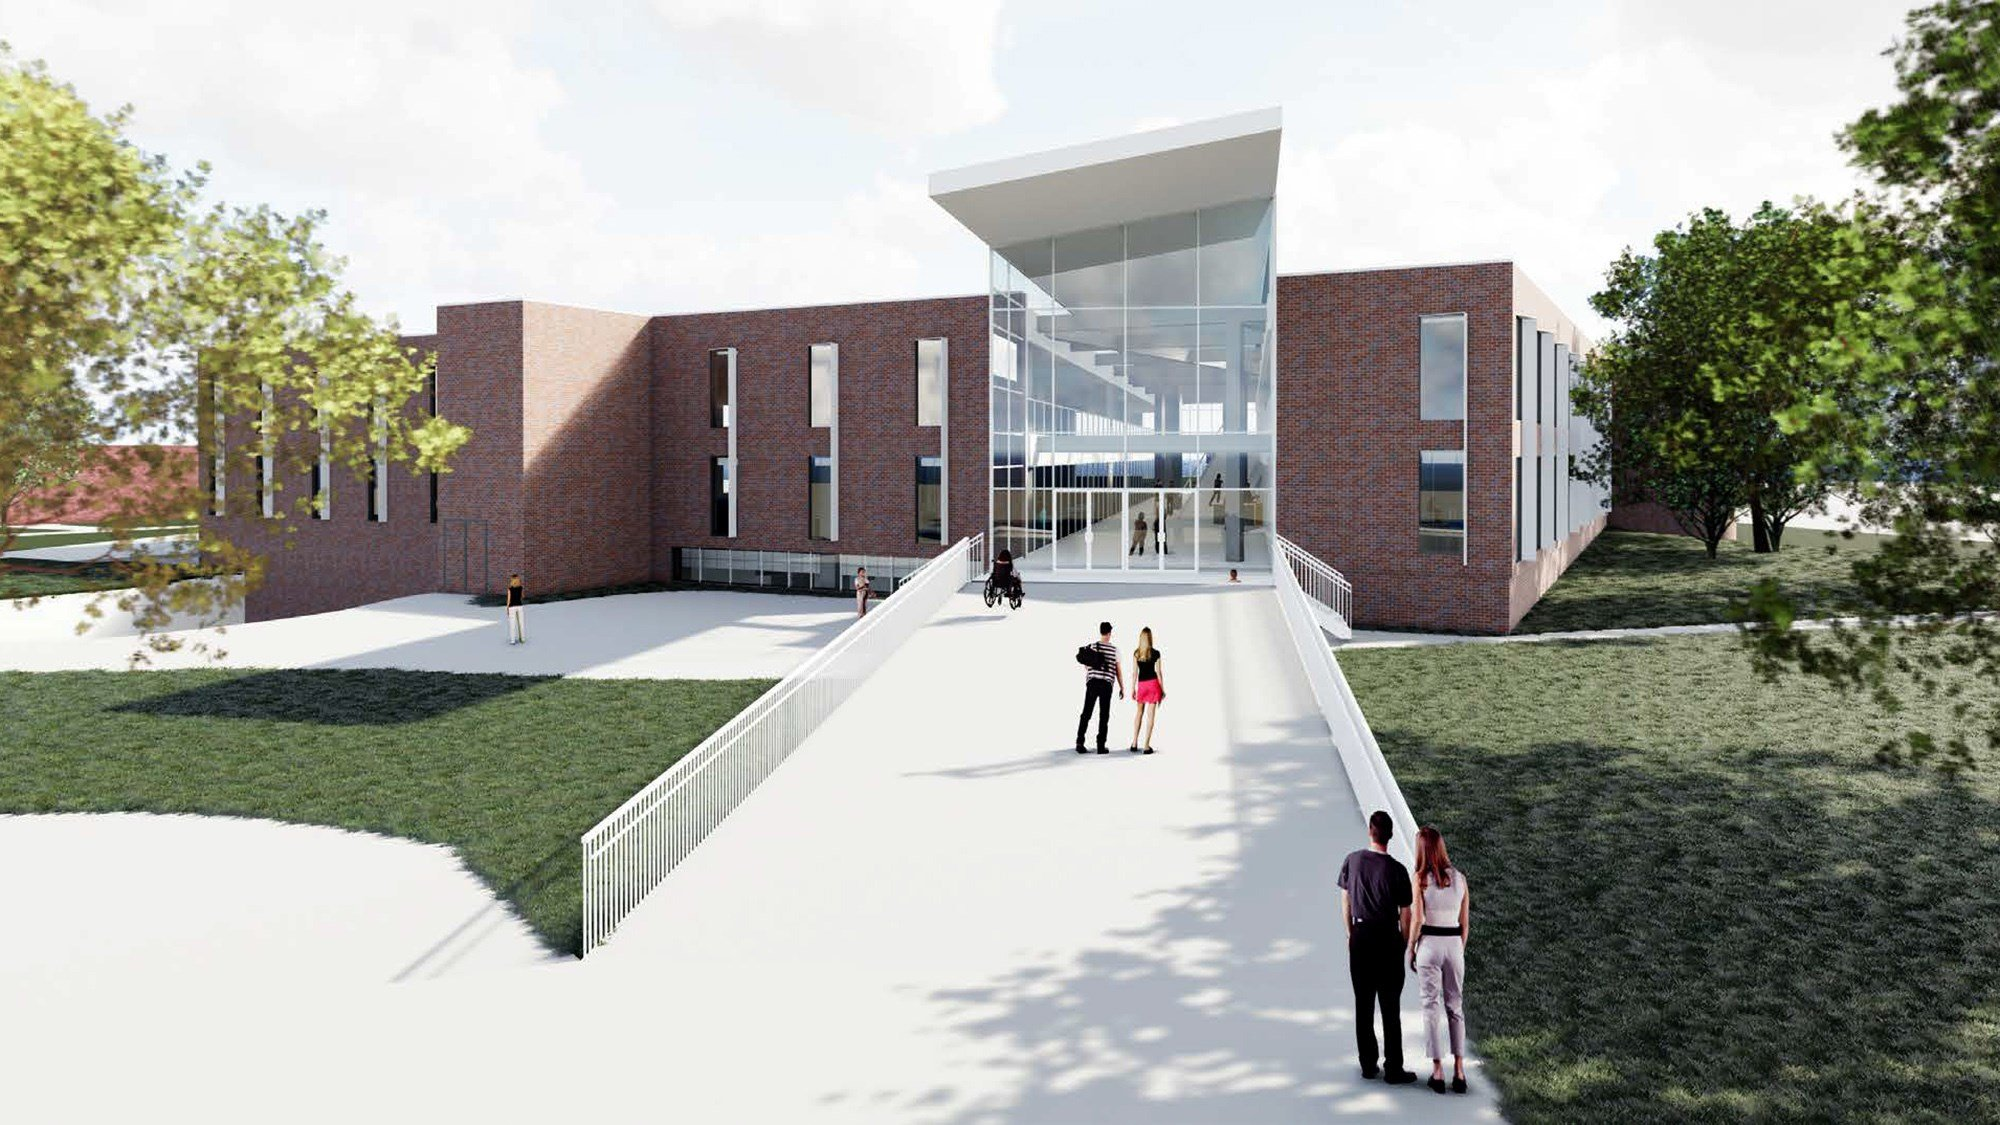 UNK planning major improvements to campus library